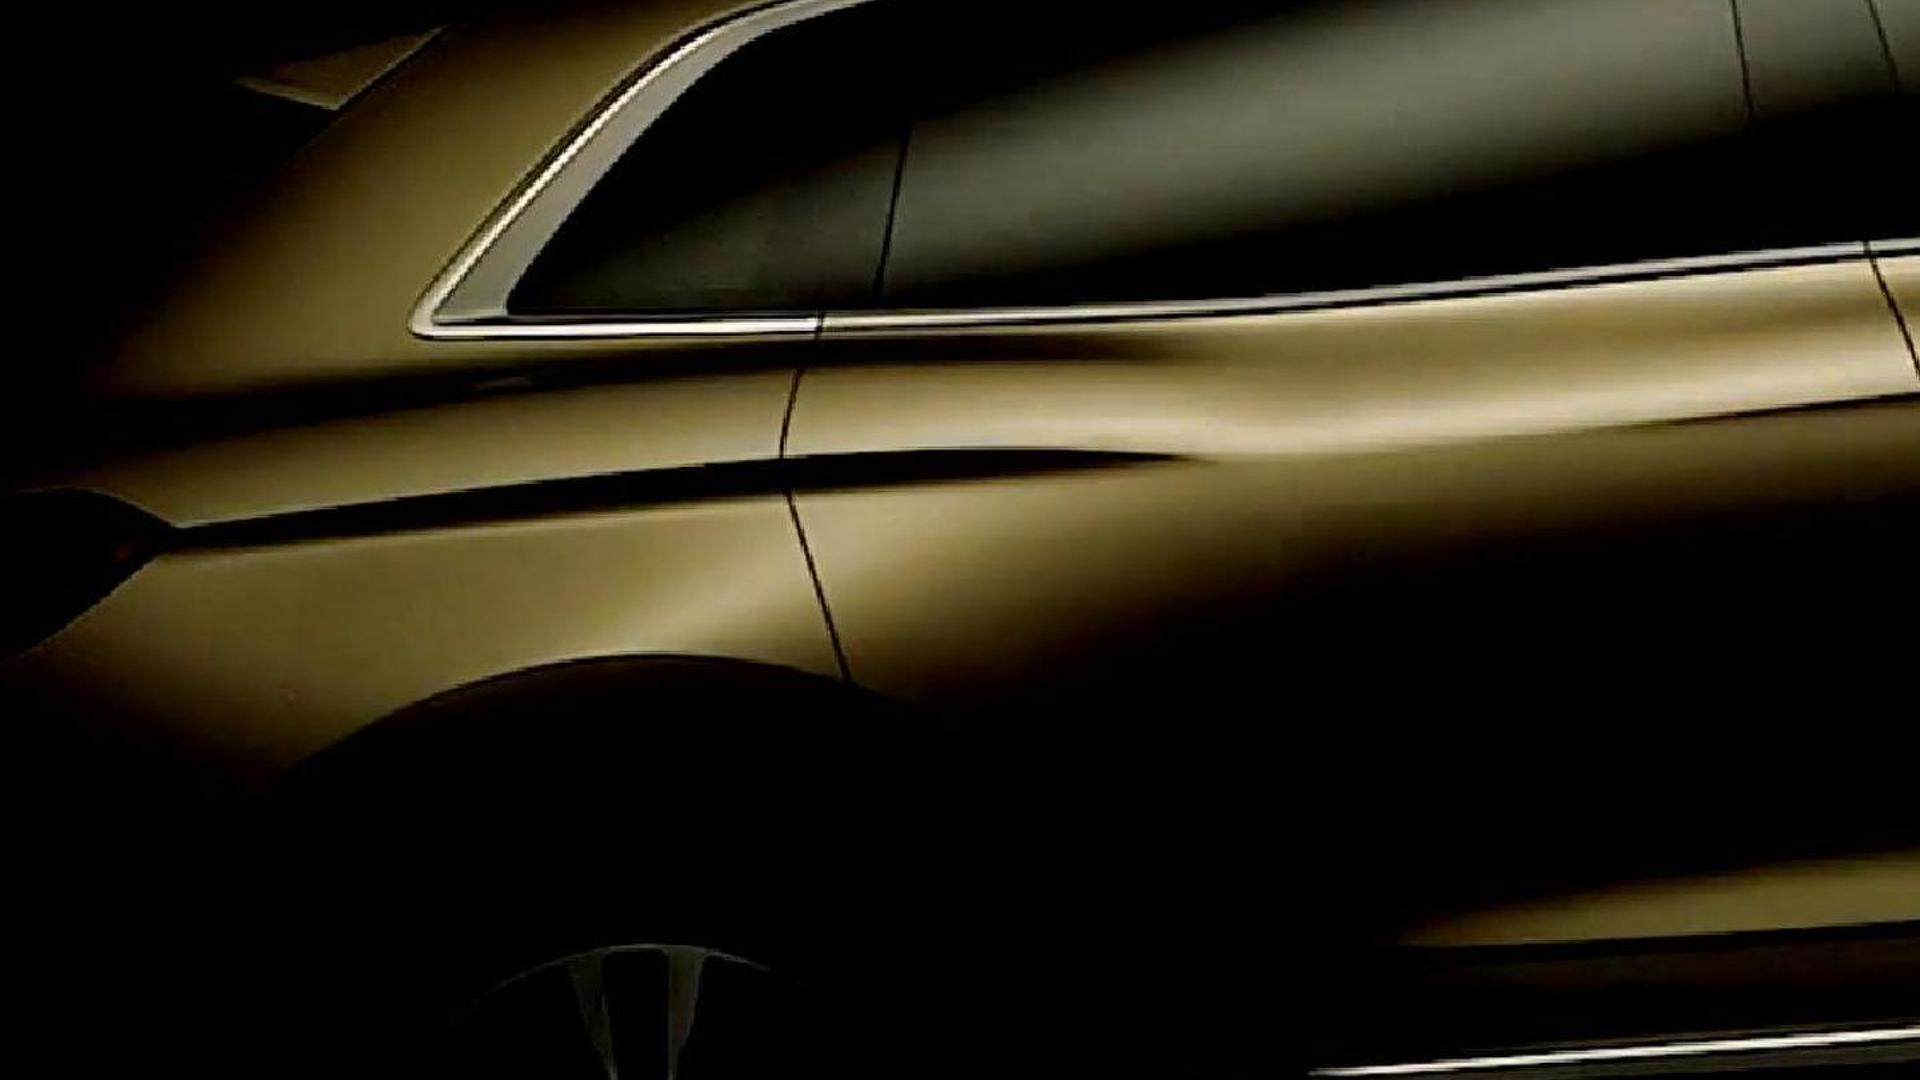 Lincoln teases a mysterious new concept, could preview the next MKX